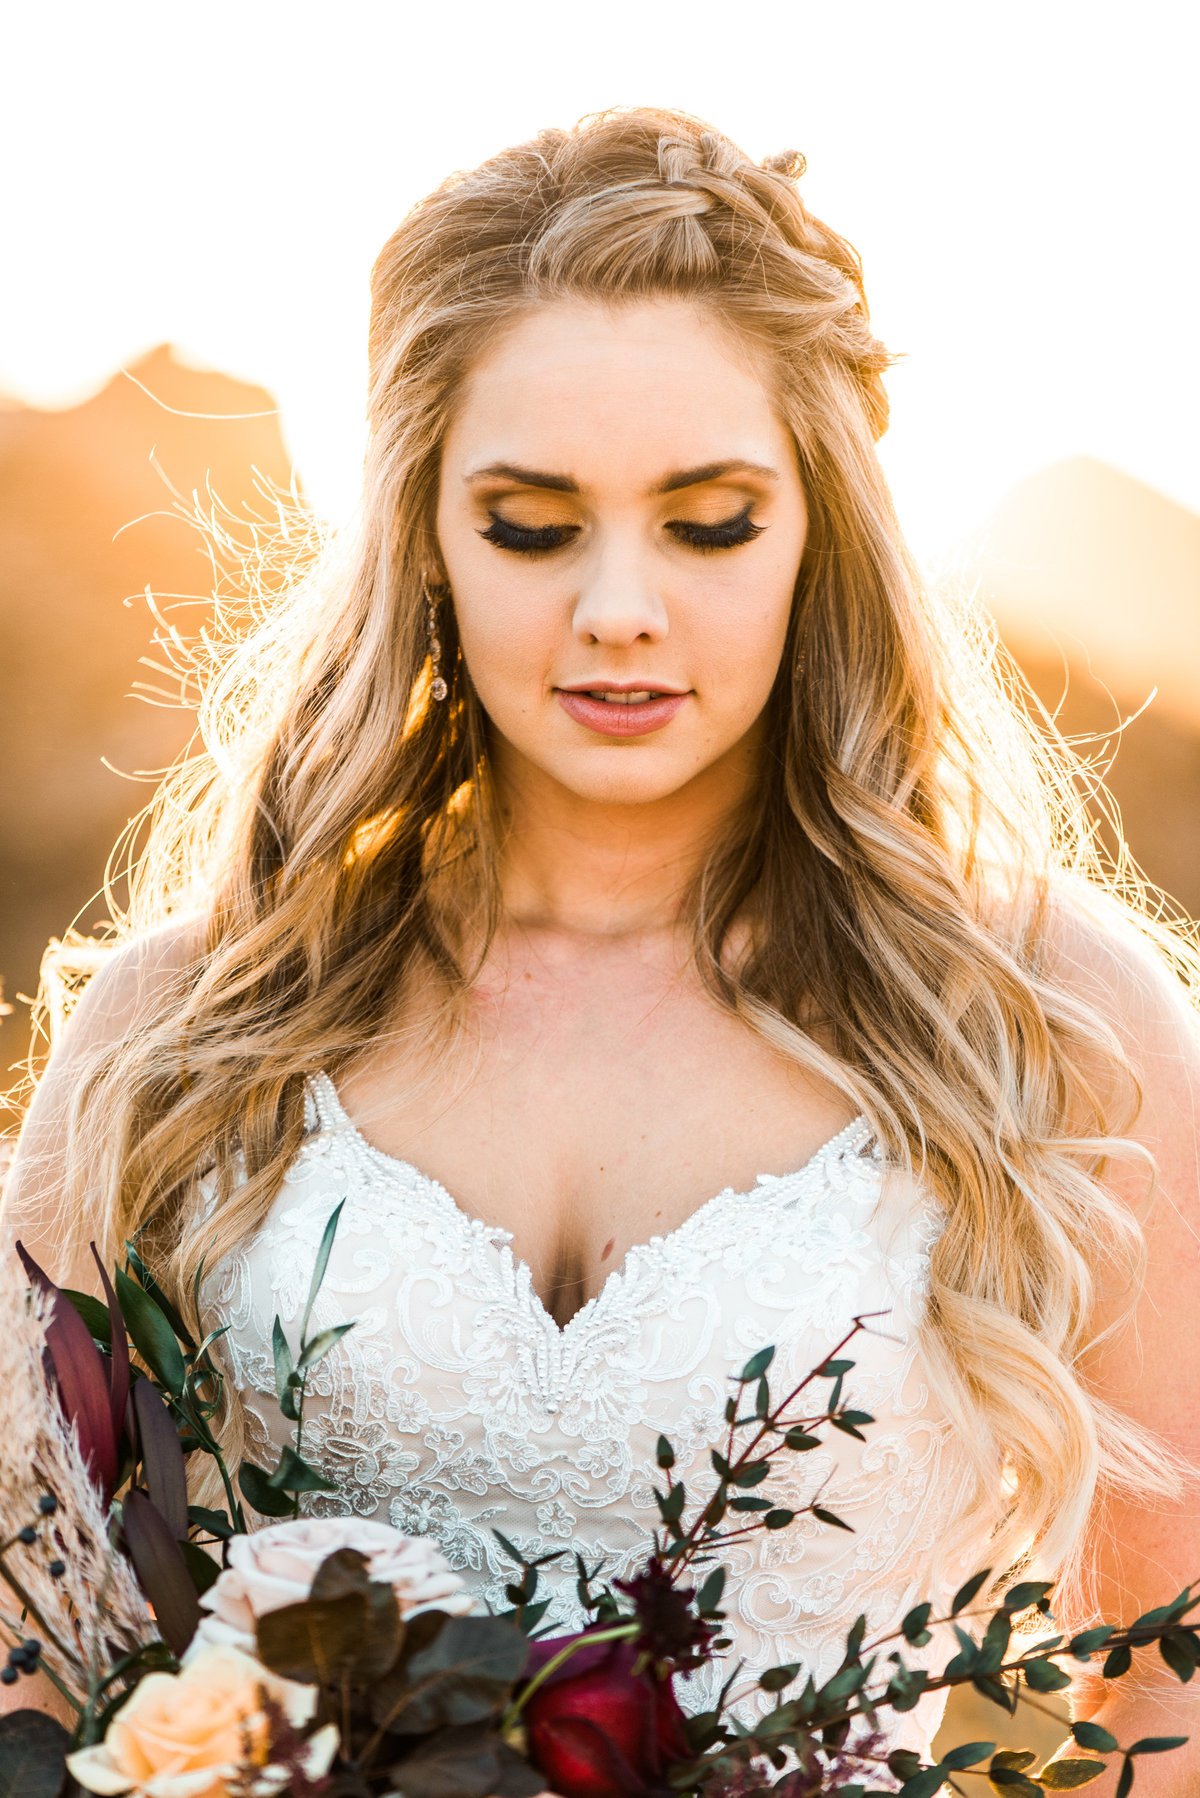 vasquez rocks wedding photographer photo